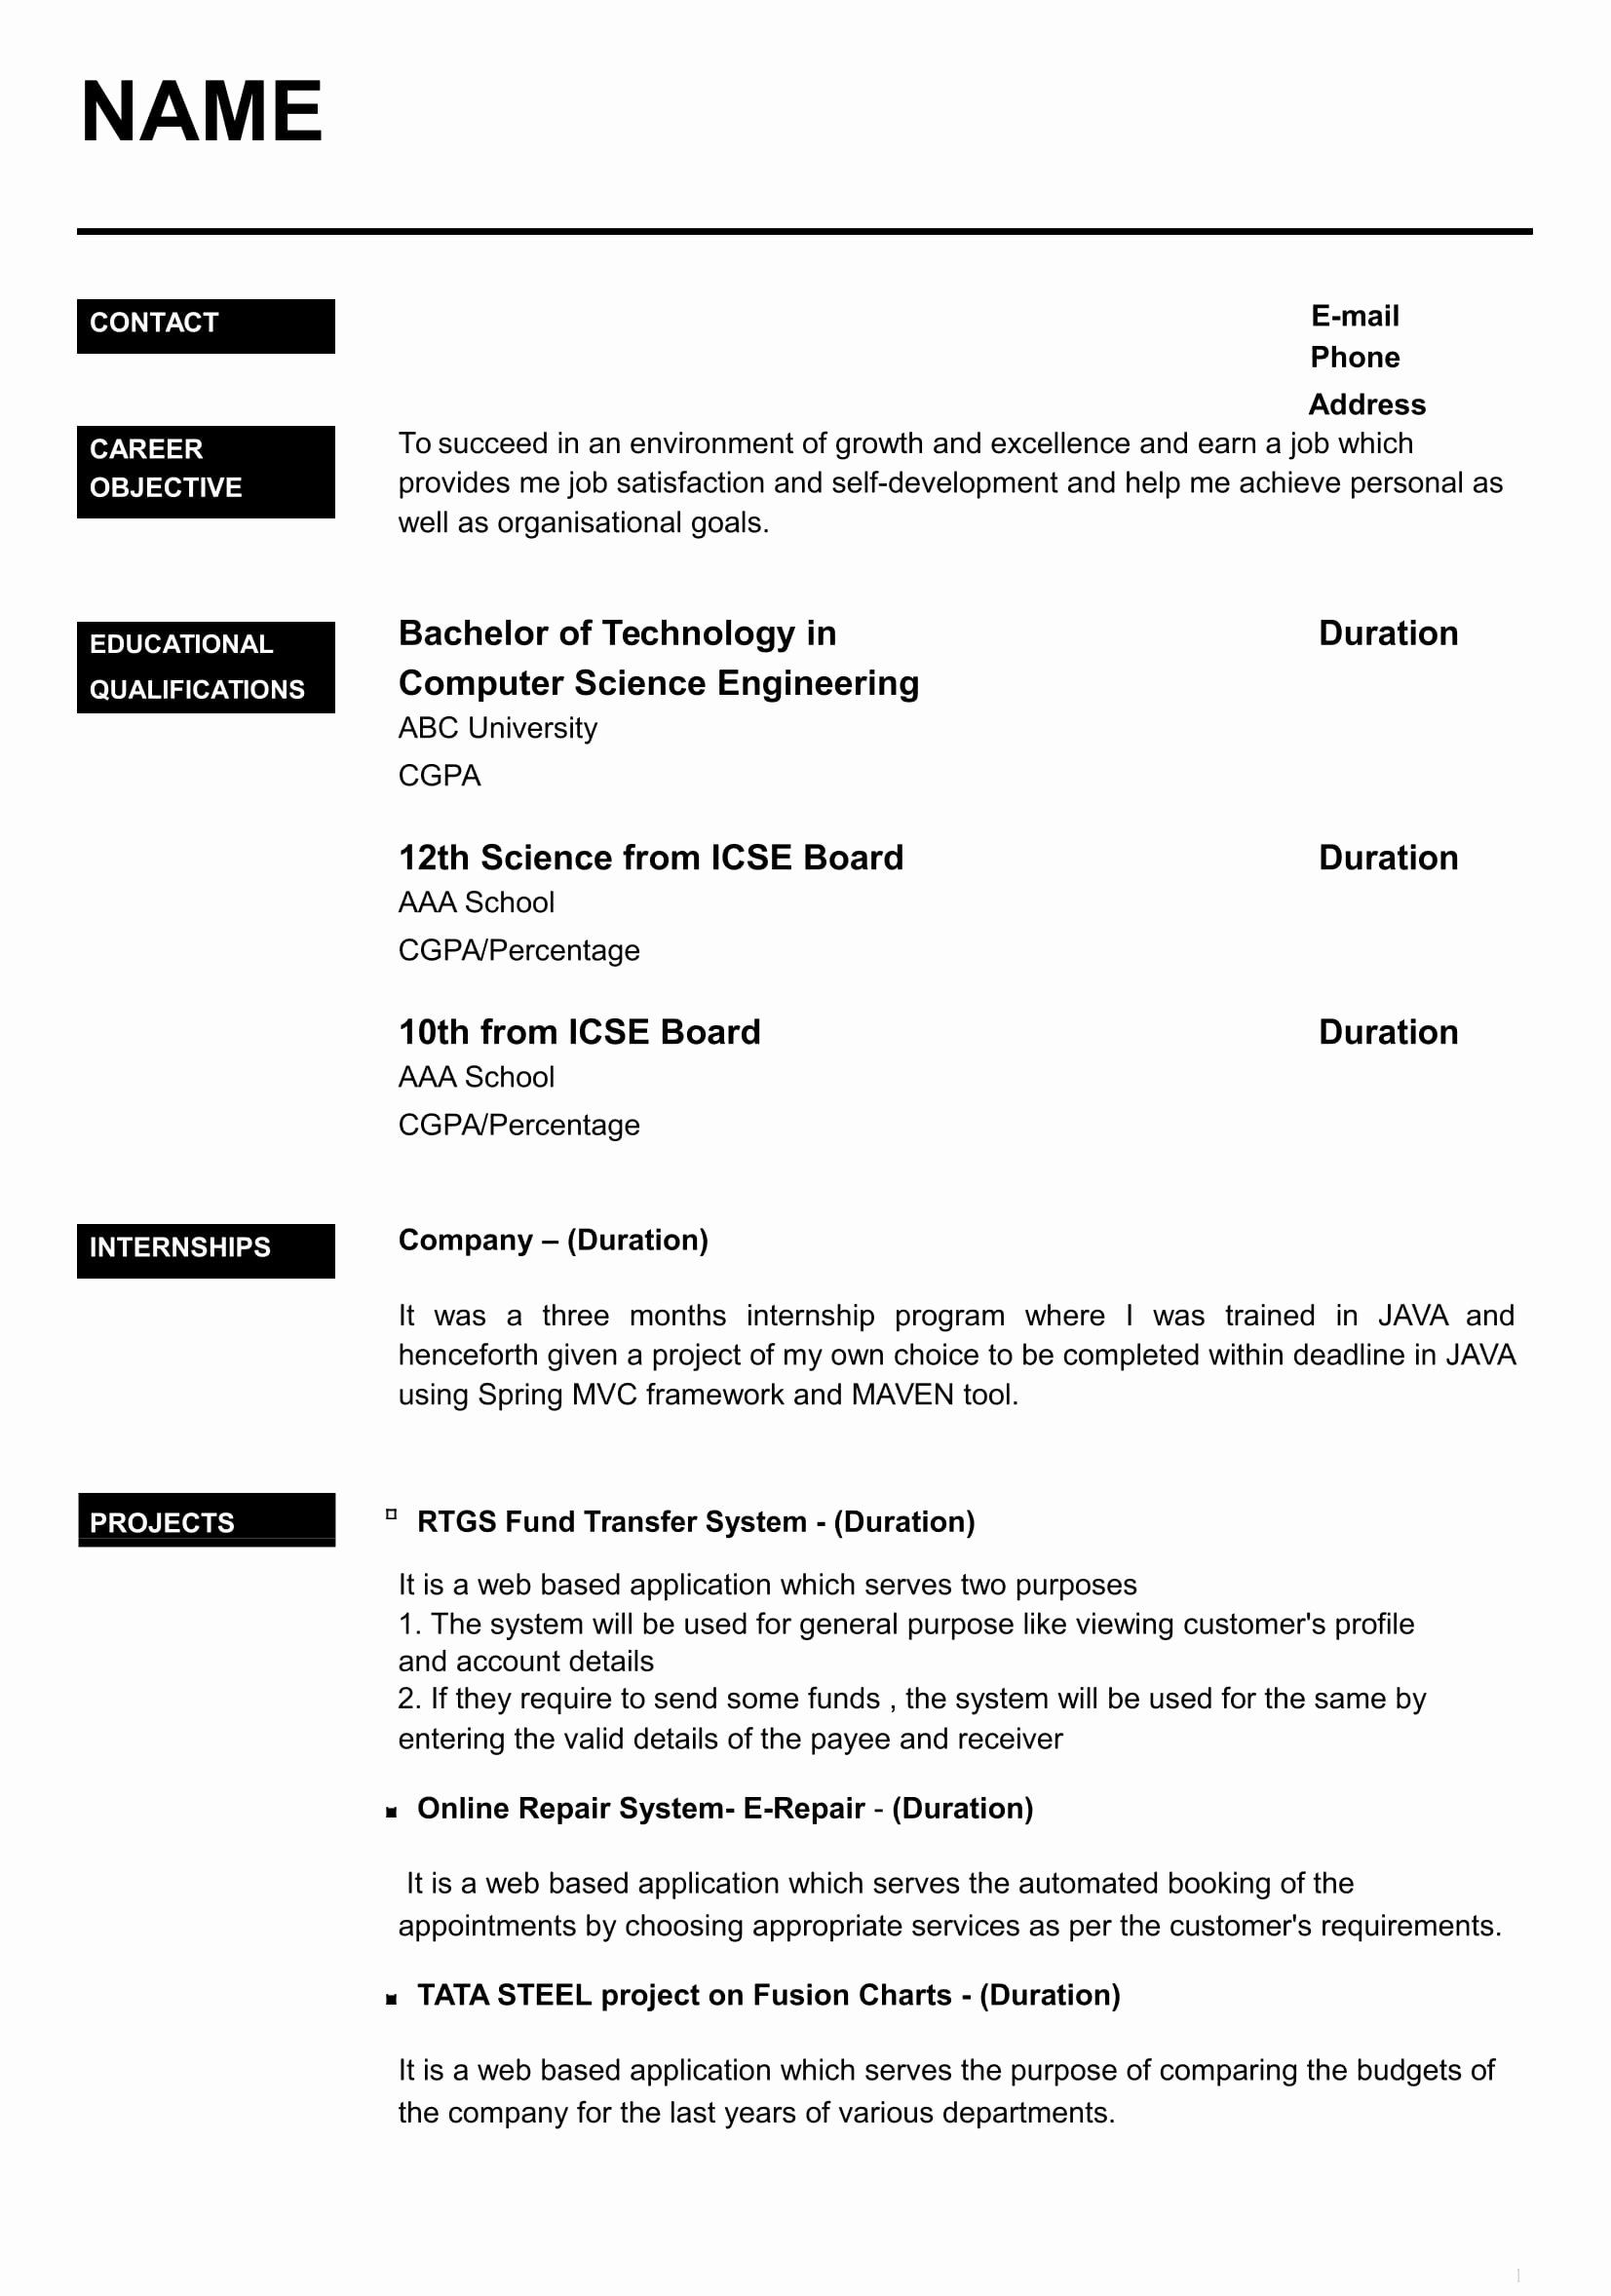 Resume with Picture Template New 32 Resume Templates for